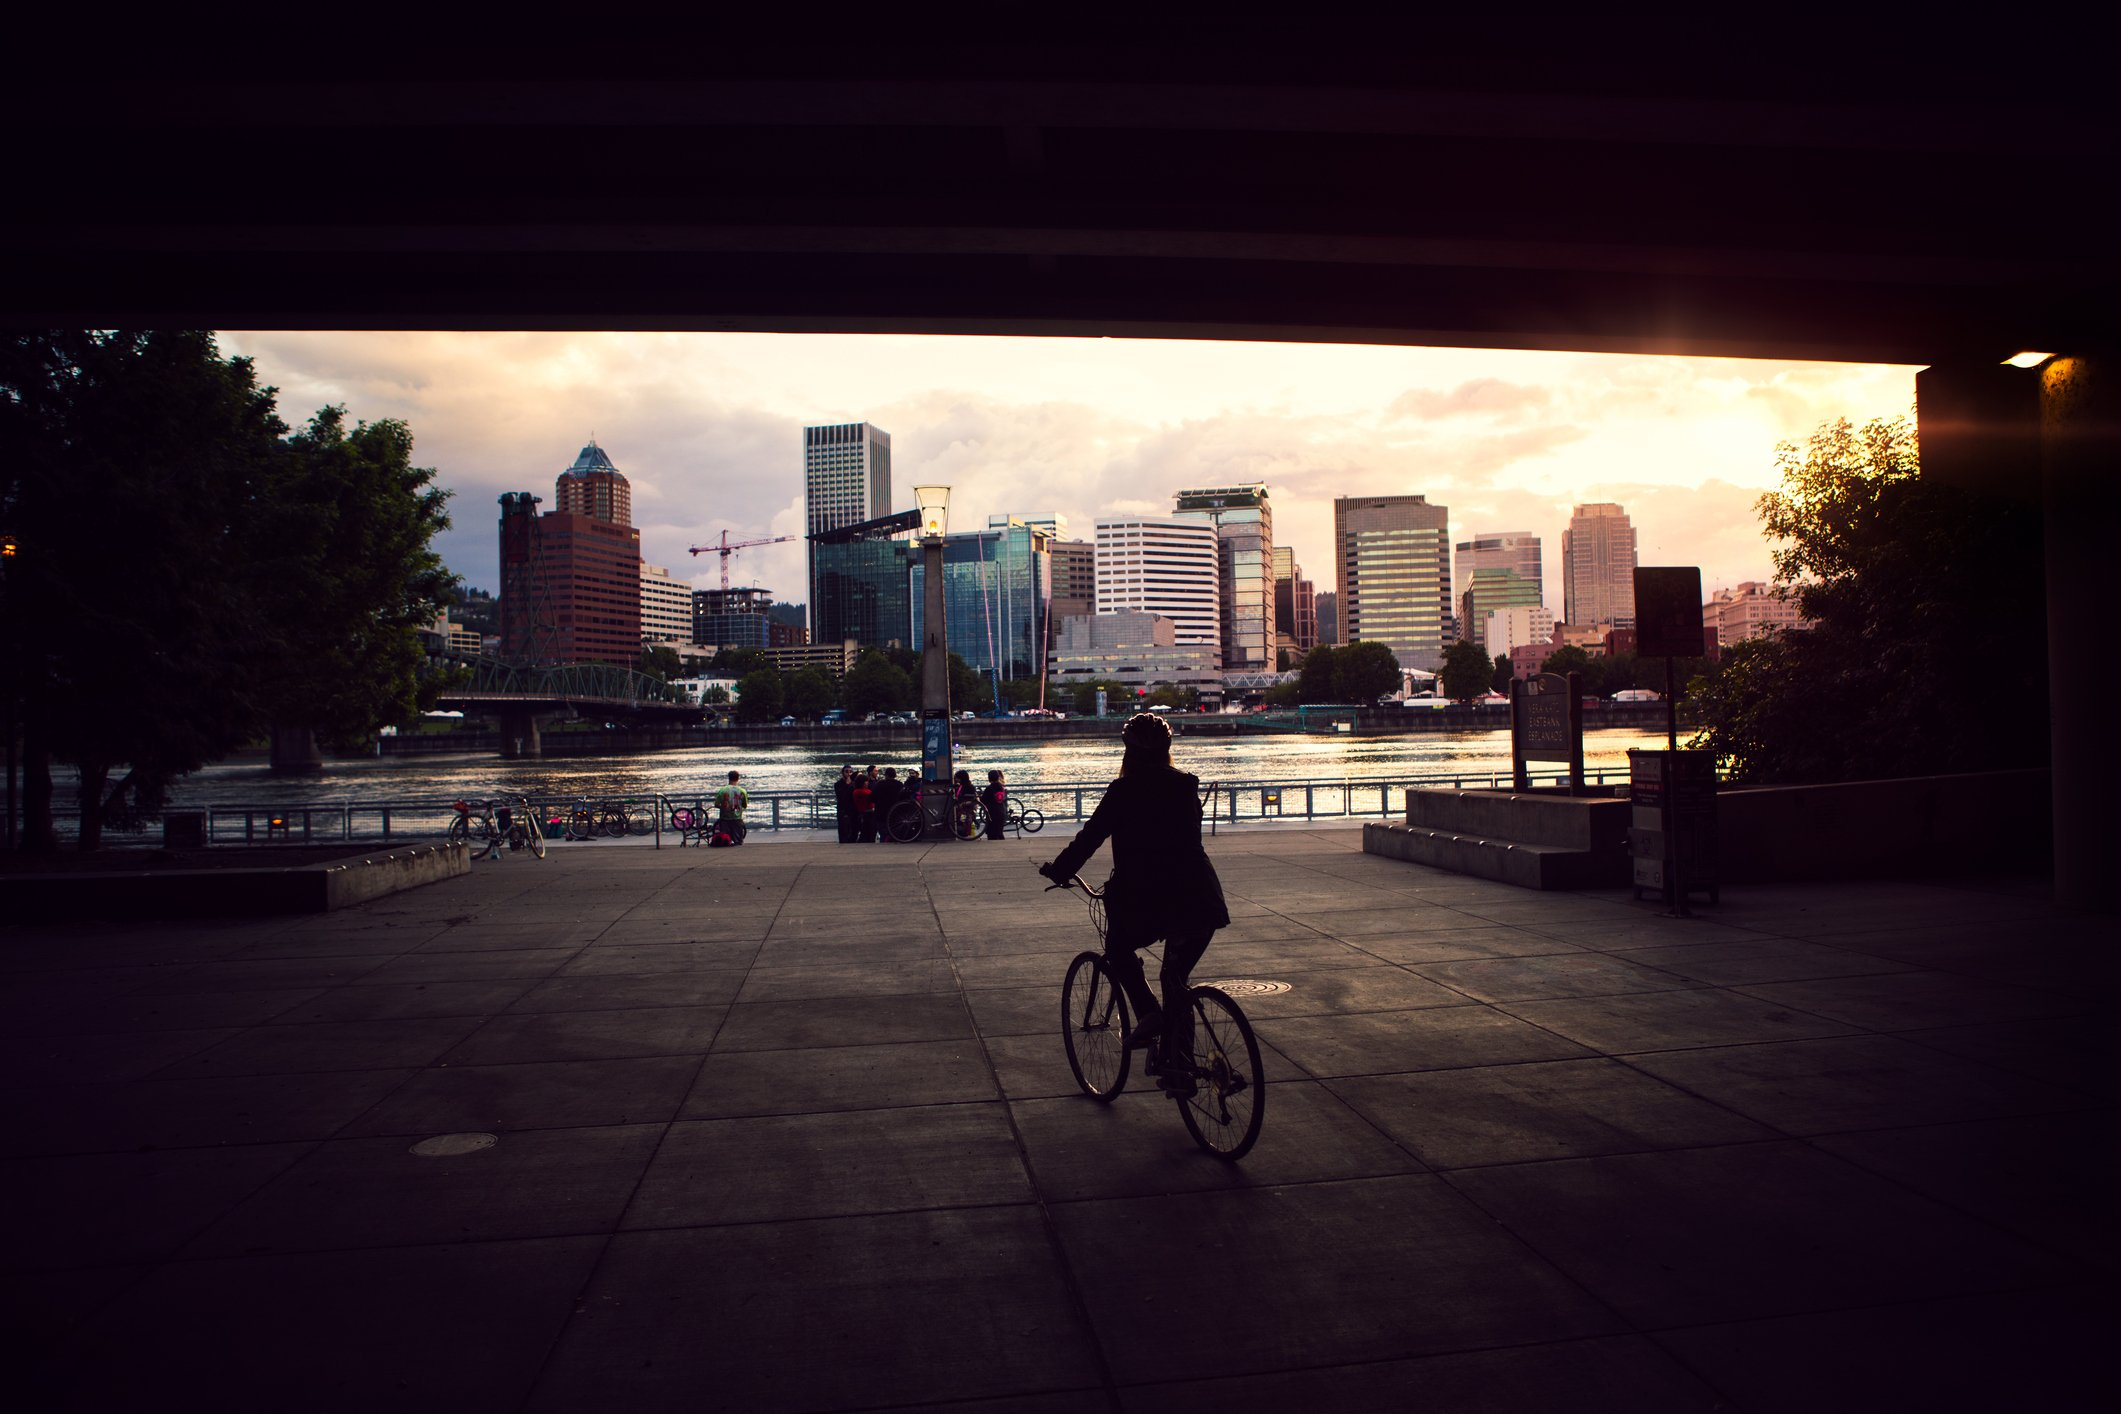 An adult woman rides her bicycle under a Interstate 5 overpass to the waterfront Eastbank Esplanade in Portland, Oregon. She is silhouetted by the bridges shadow, the city glowing orange in the setting sun.